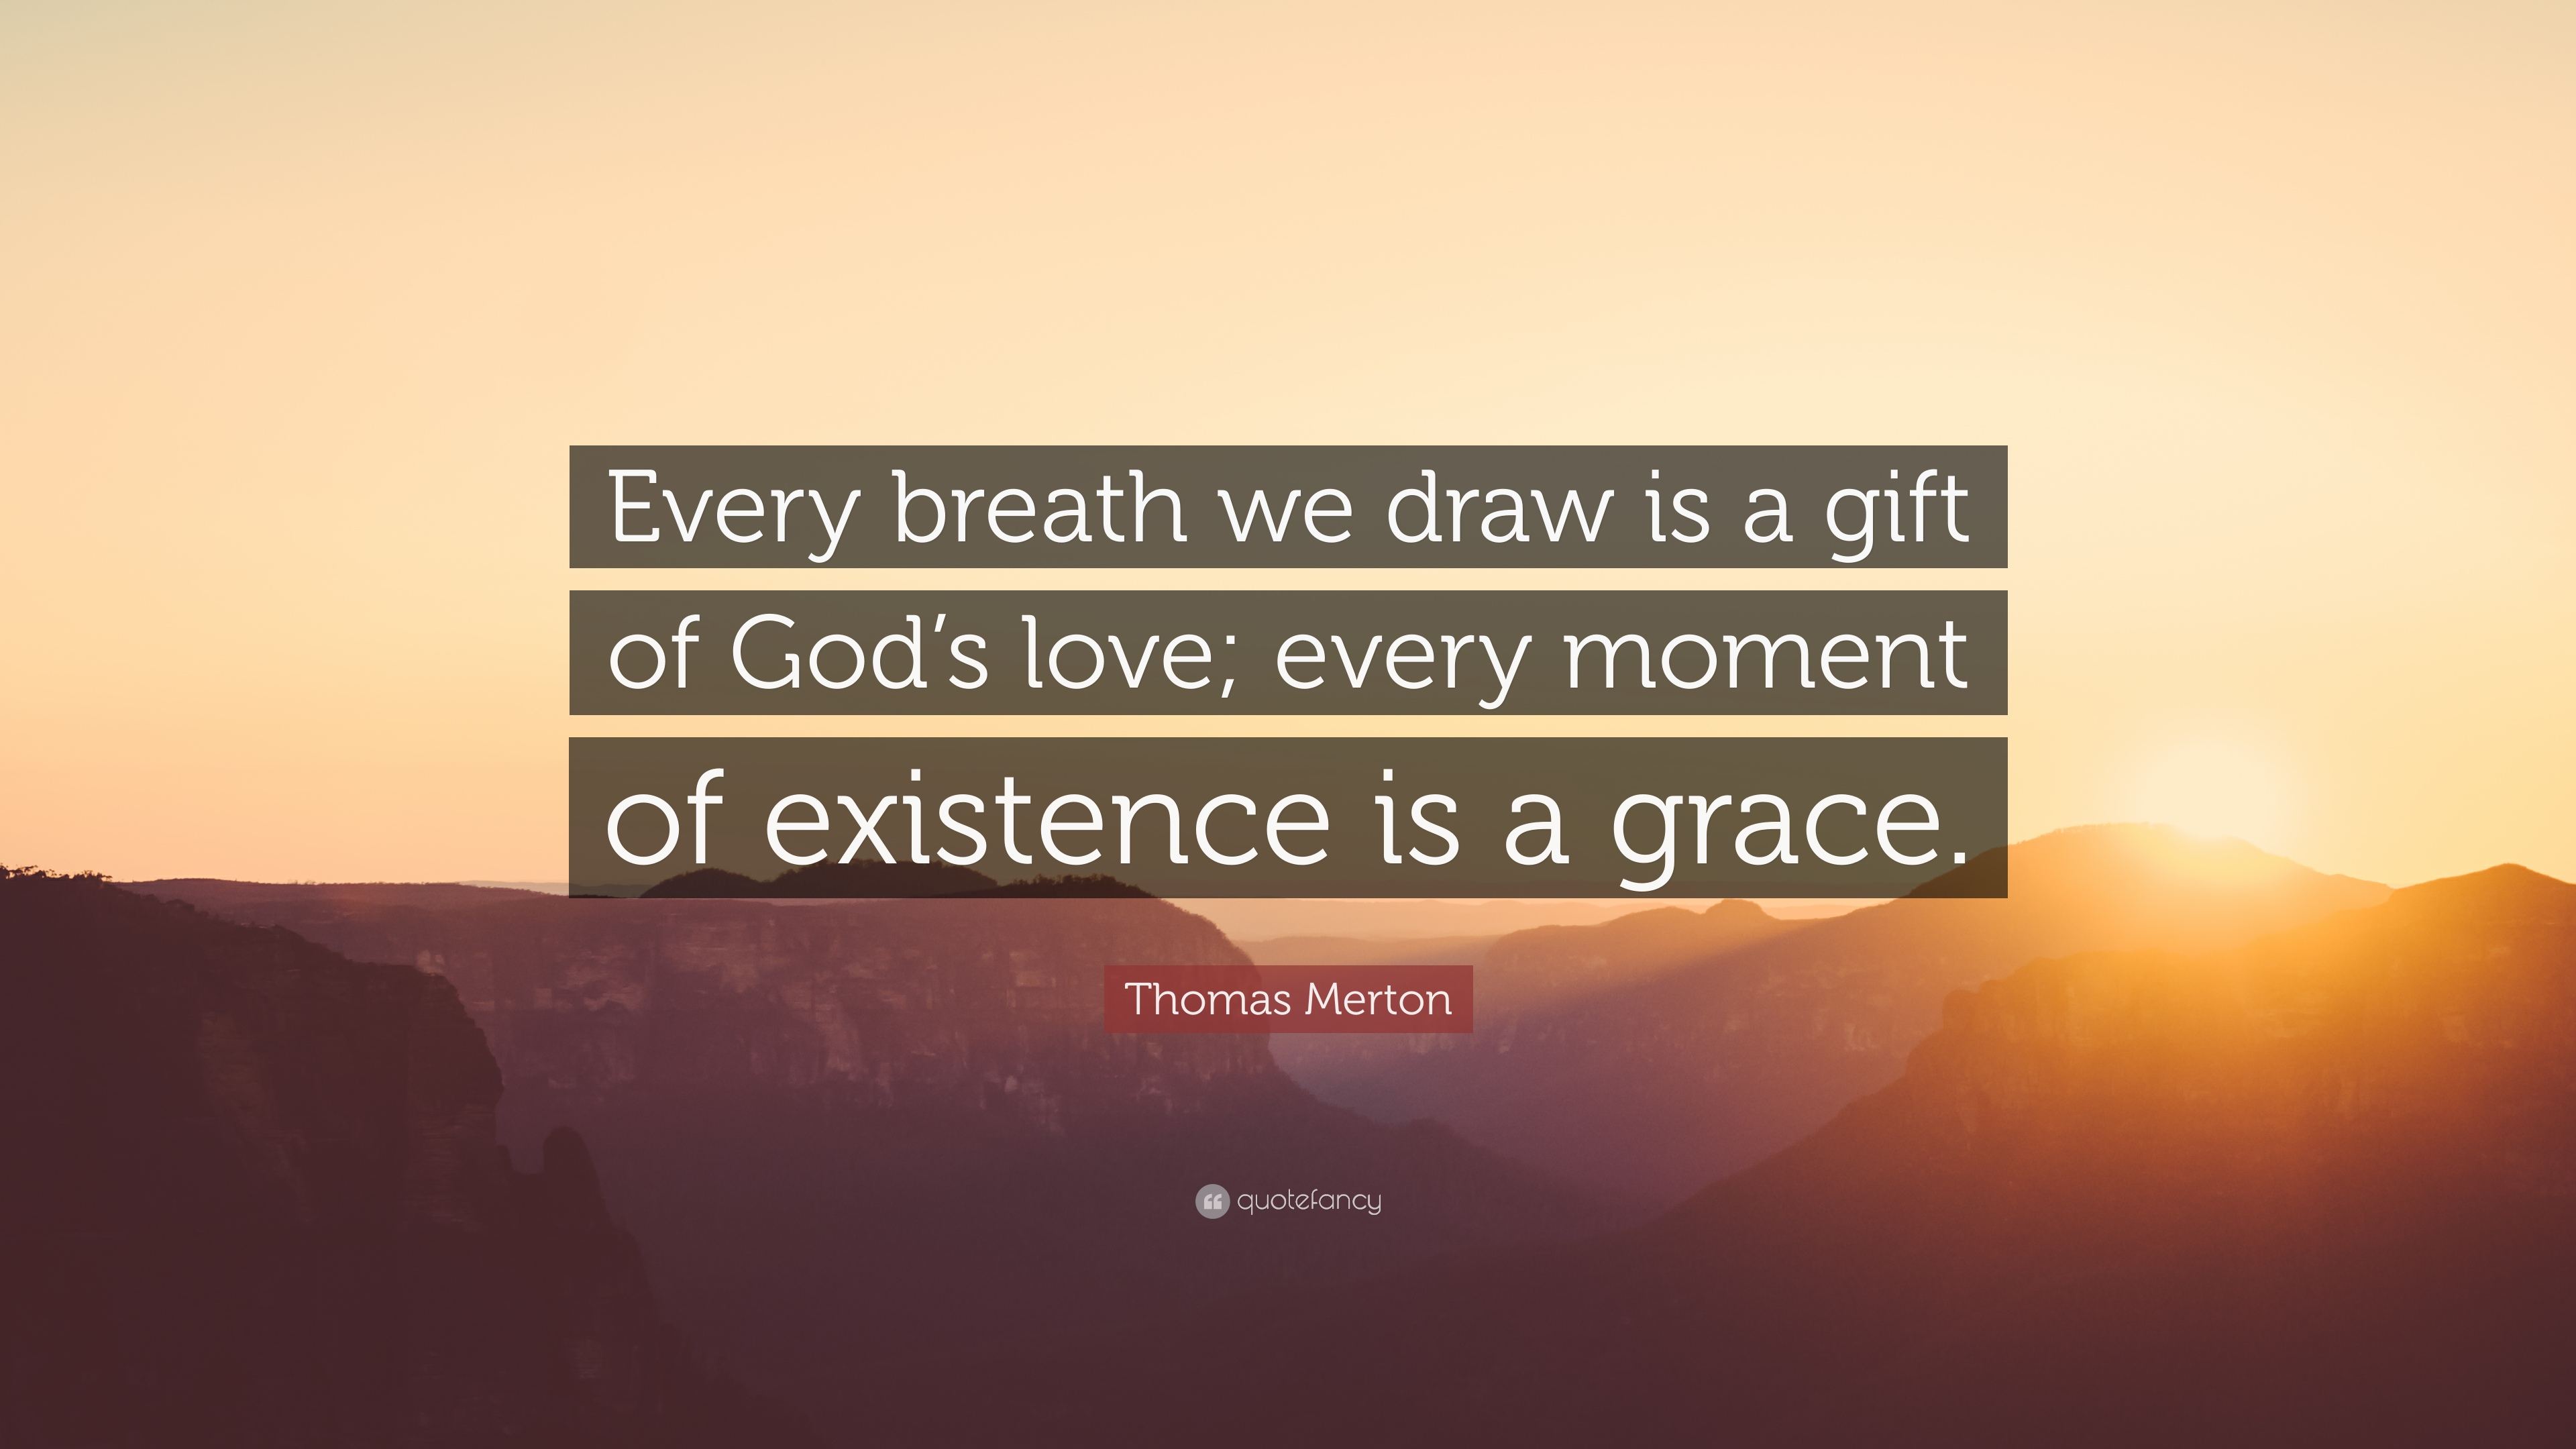 Thomas merton quote every breath we draw is a gift of gods love